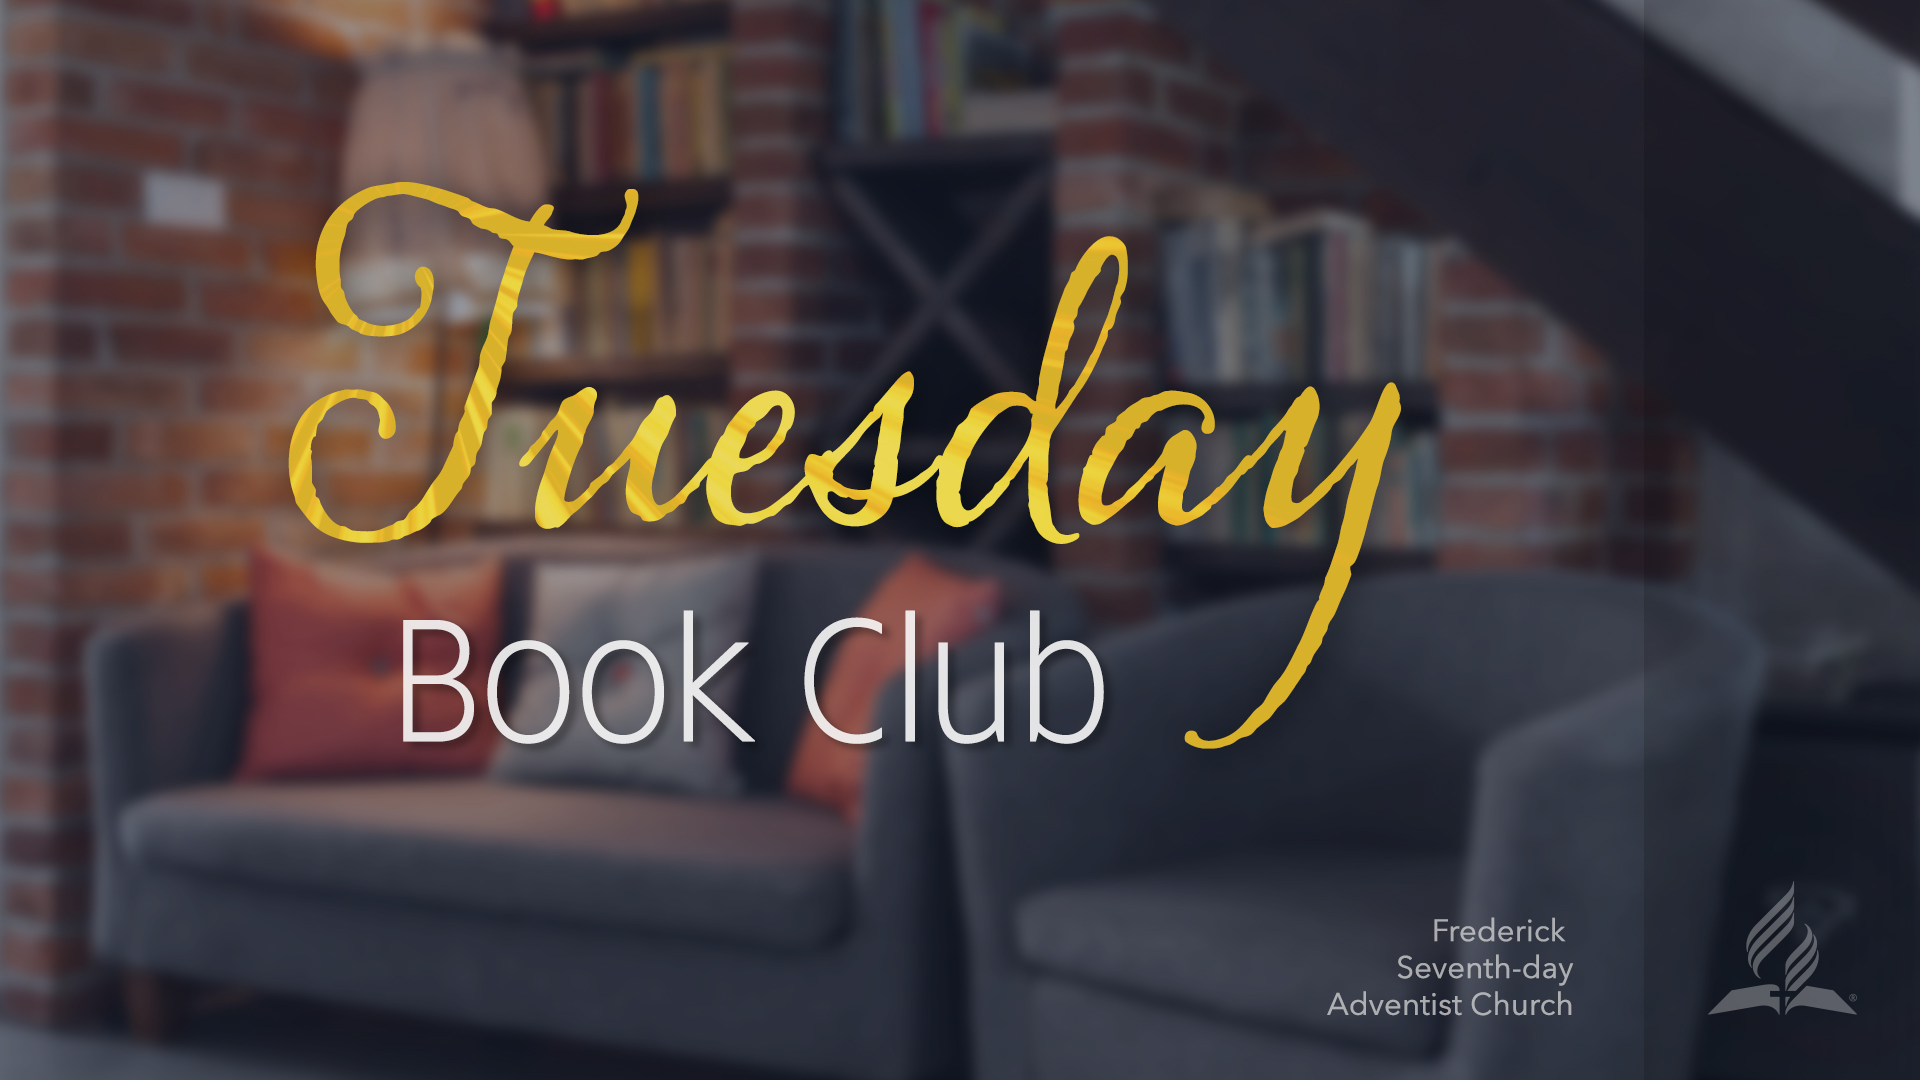 Tuesday Book Club